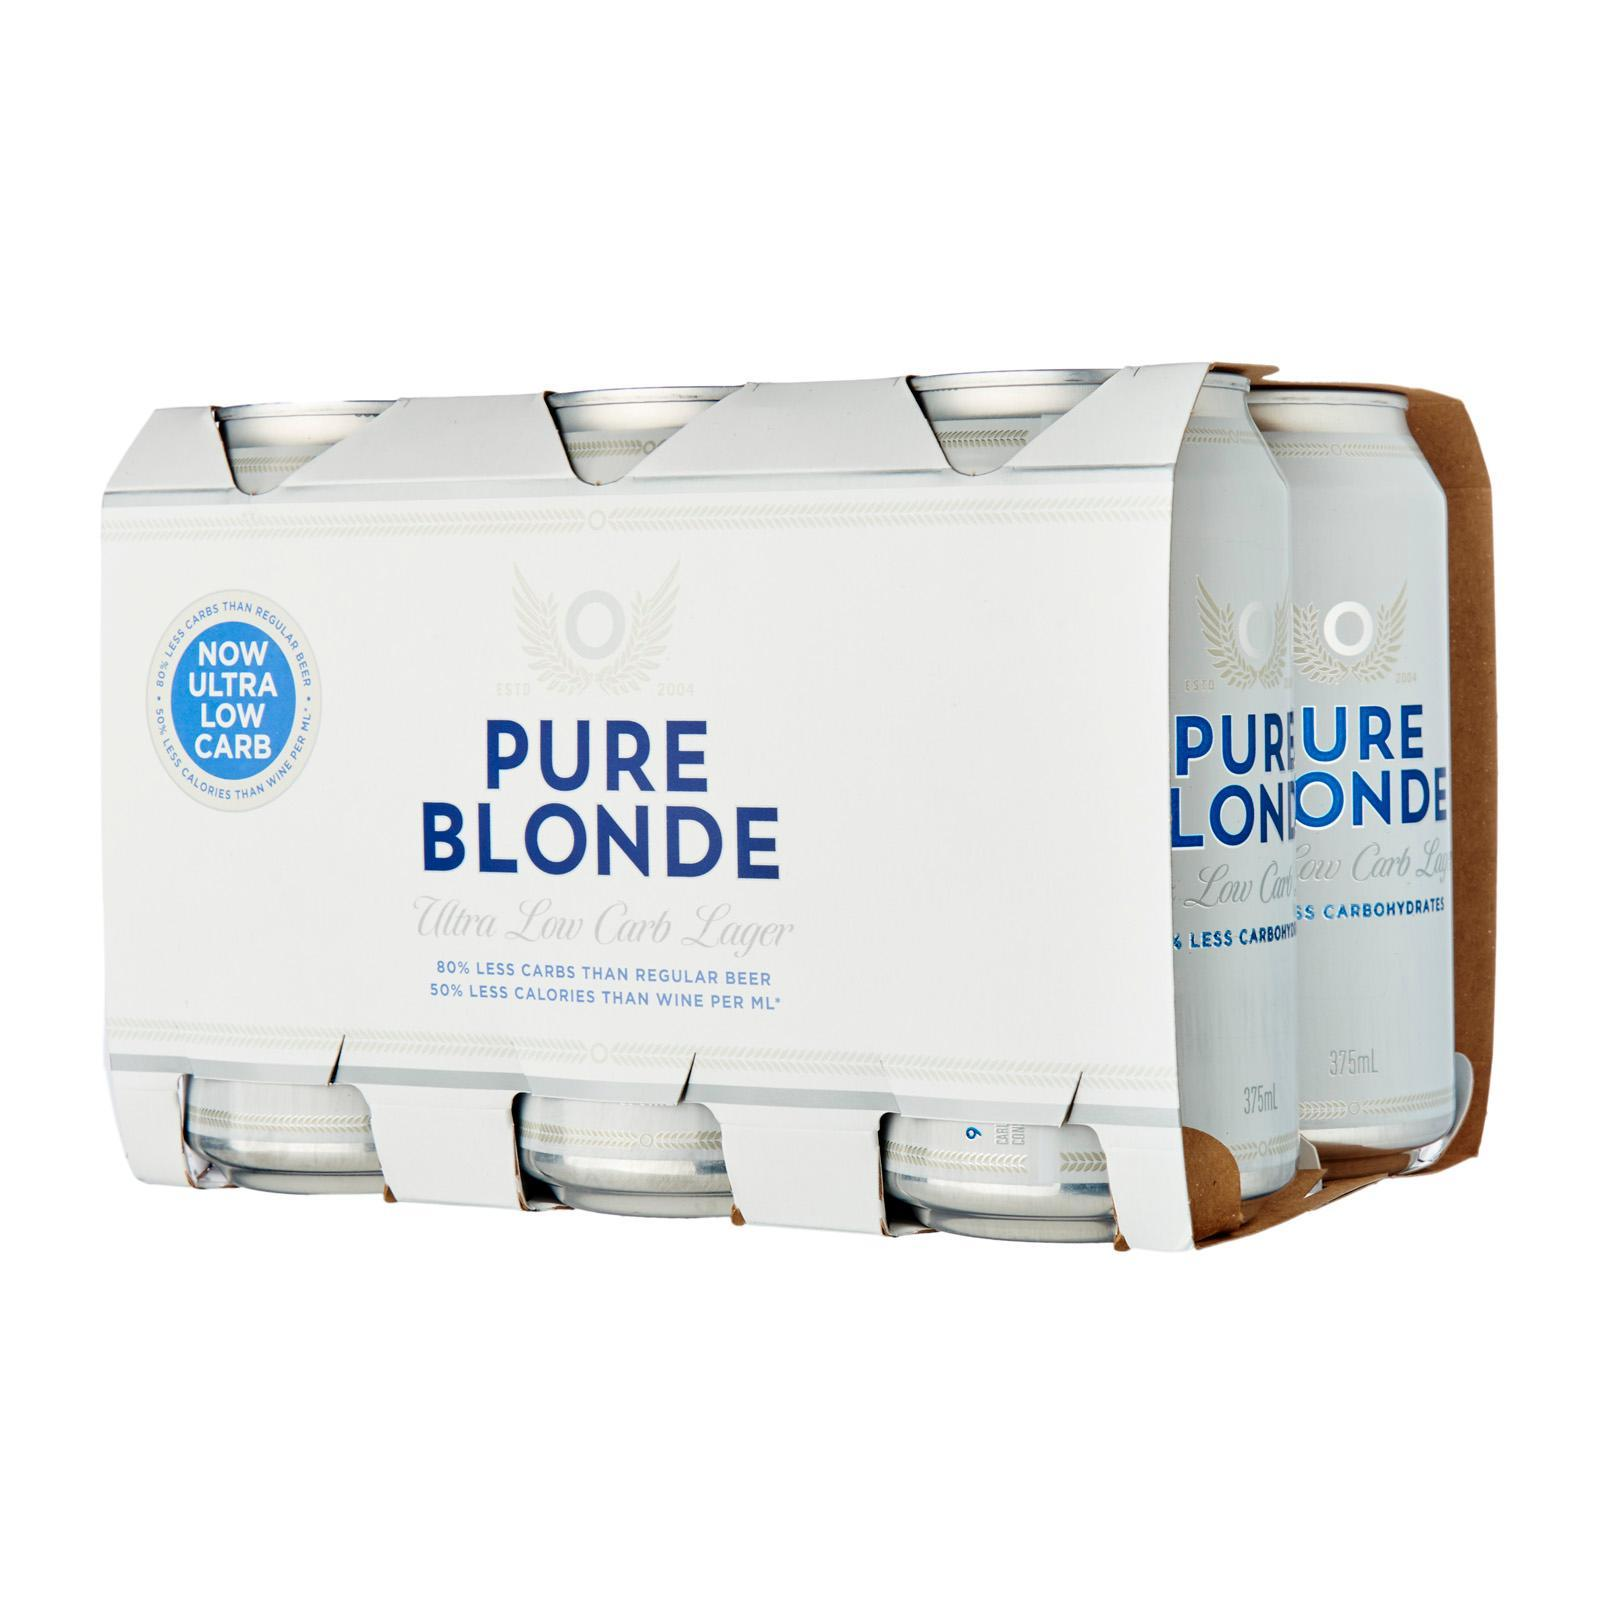 Pure Blonde Premium Beer - 6 x 375ml cans